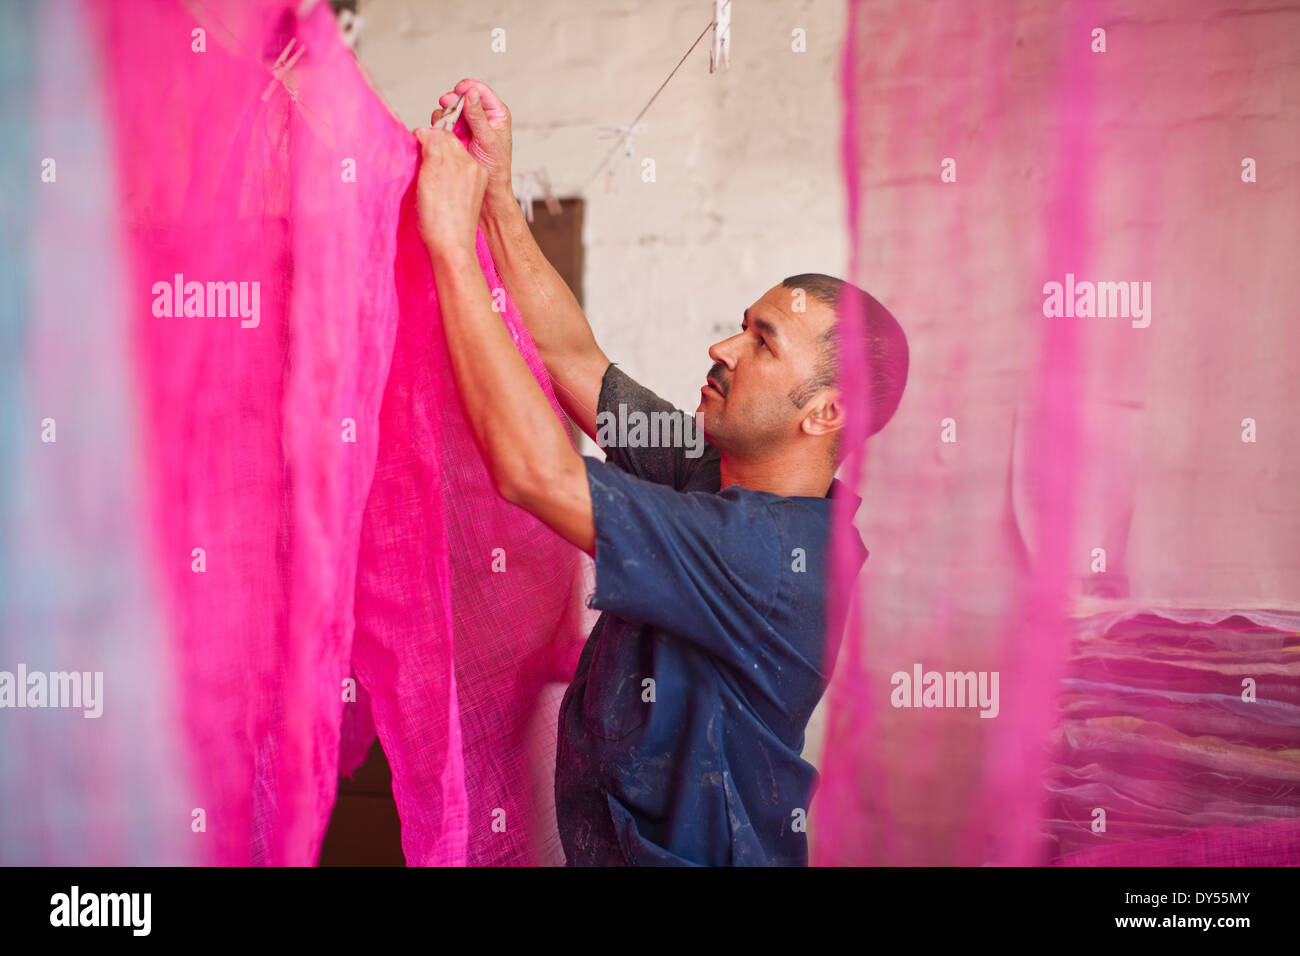 Man hanging up dyed fabric in traditional milliners workshop - Stock Image